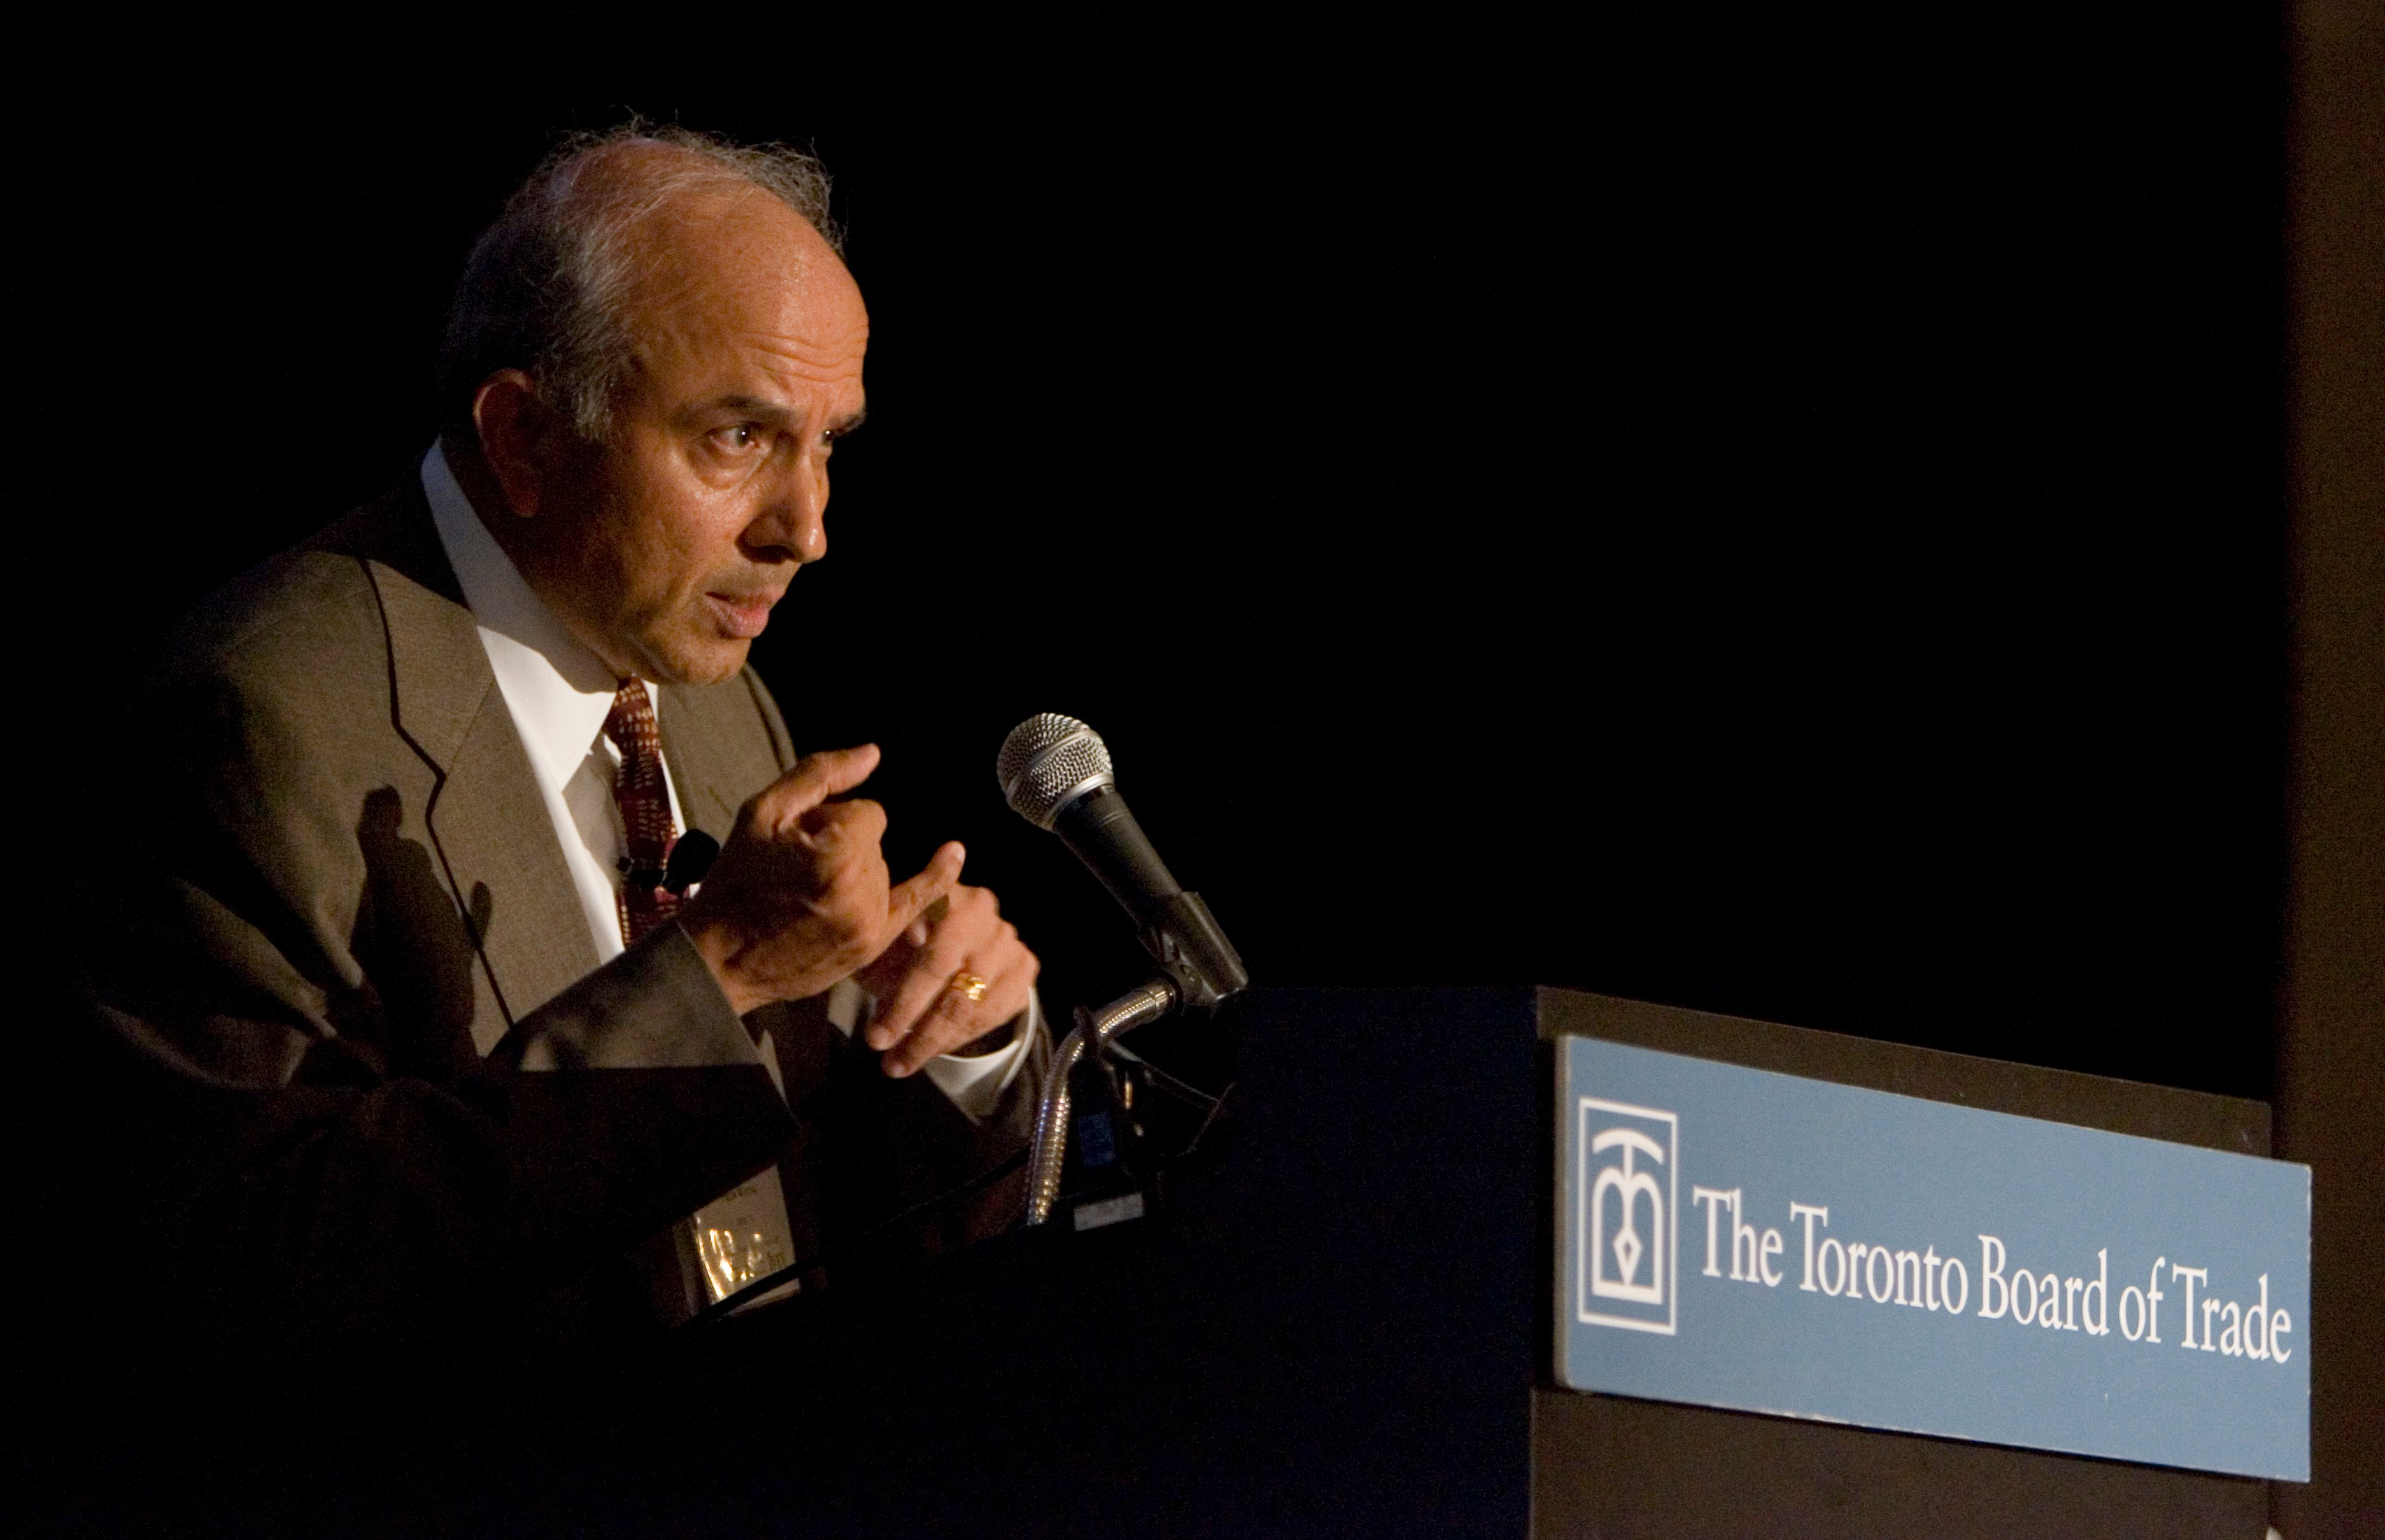 May 25 2007 Toronto: Prem Watsa, chairman of Fairfax Financial holdings Ltd. speaking at a Toronto Board of Trade luncheon Friday at Noon hour. (Photo by David Cooper/Toronto Star via Getty Images)